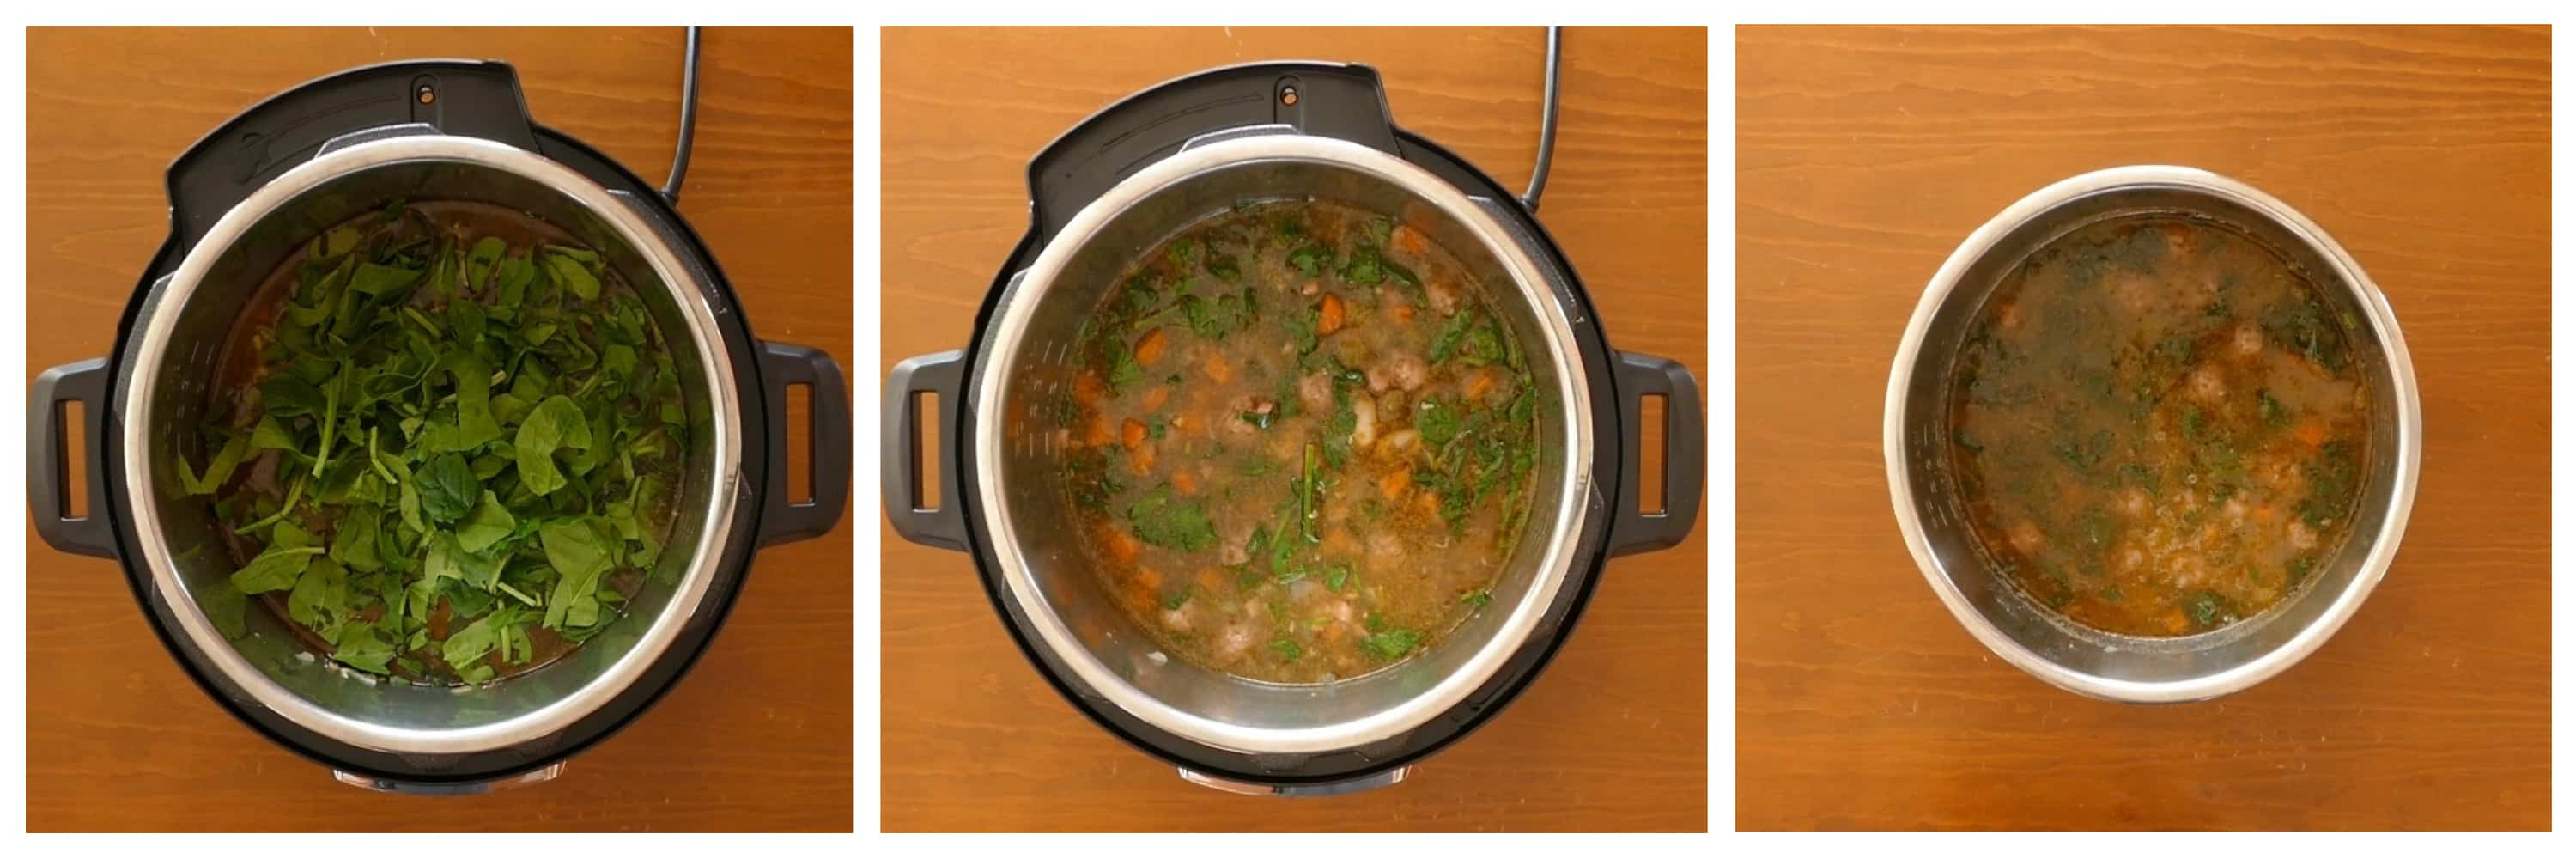 Instant Pot Italian Wedding Soup Instructions 3 - spinach, stirred, inner pot removed from base unit - Paint the Kitchen Red